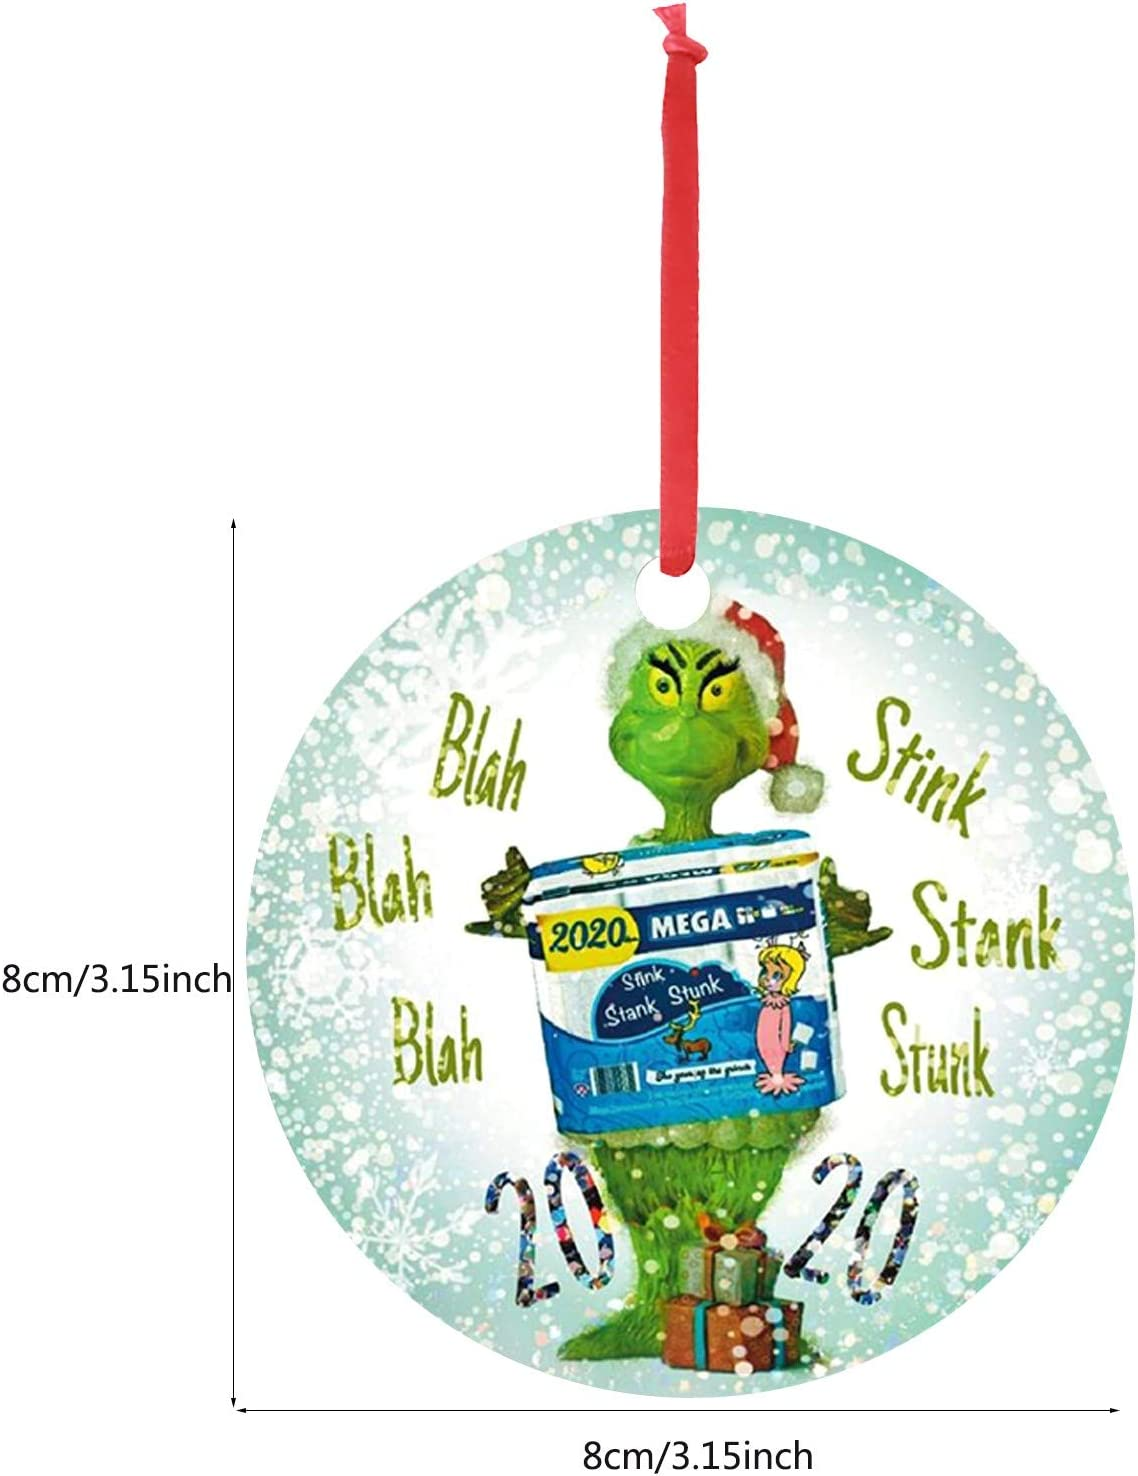 2020 Grinch Christmas Hanging with Mask 2020 Stink Stank Stunk Ornament Christmas Tree Decoration Plexiglass Gift Presents for Friends Family